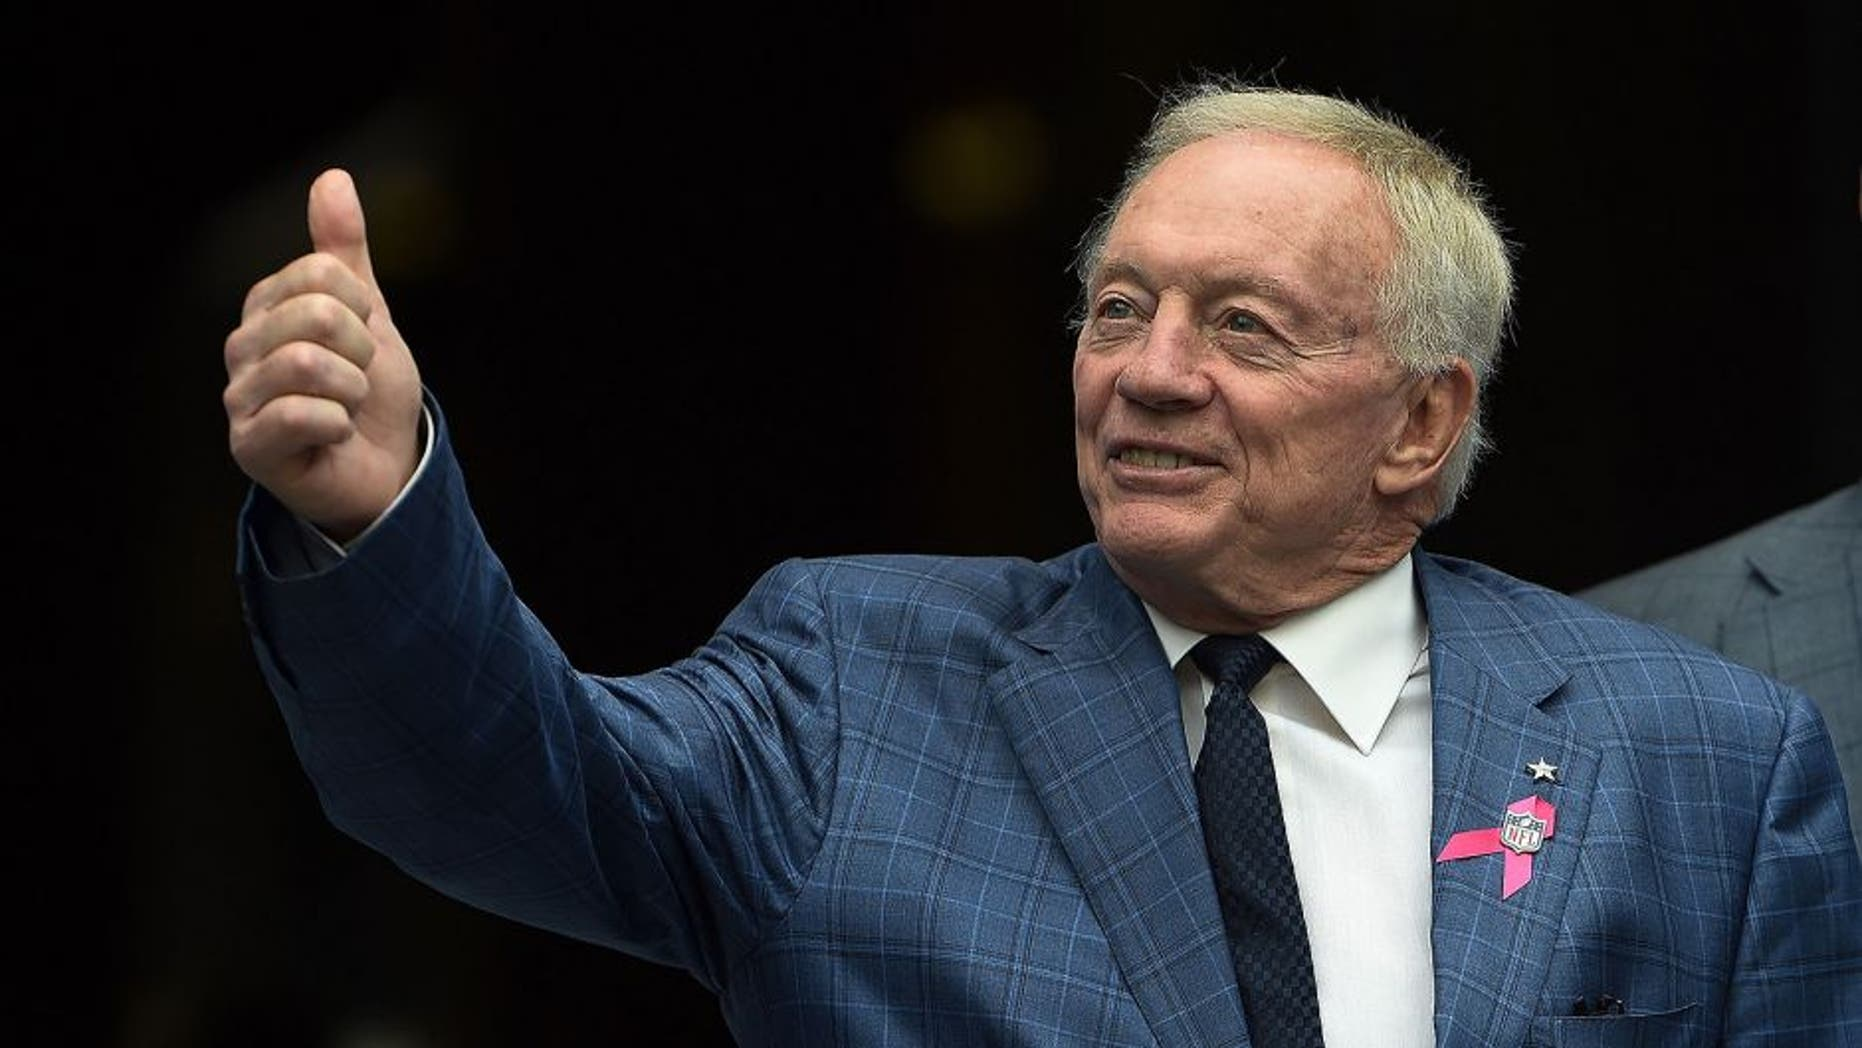 SEATTLE, WA - OCTOBER 12: Owner Jerry Jones of the Dallas Cowboys gives the 'thumbs up' to some Cowboys fans before the game aagainst the Seattle Seahawks at CenturyLink Field on October 12, 2014 in Seattle, Washington. (Photo by Steve Dykes/Getty Images)